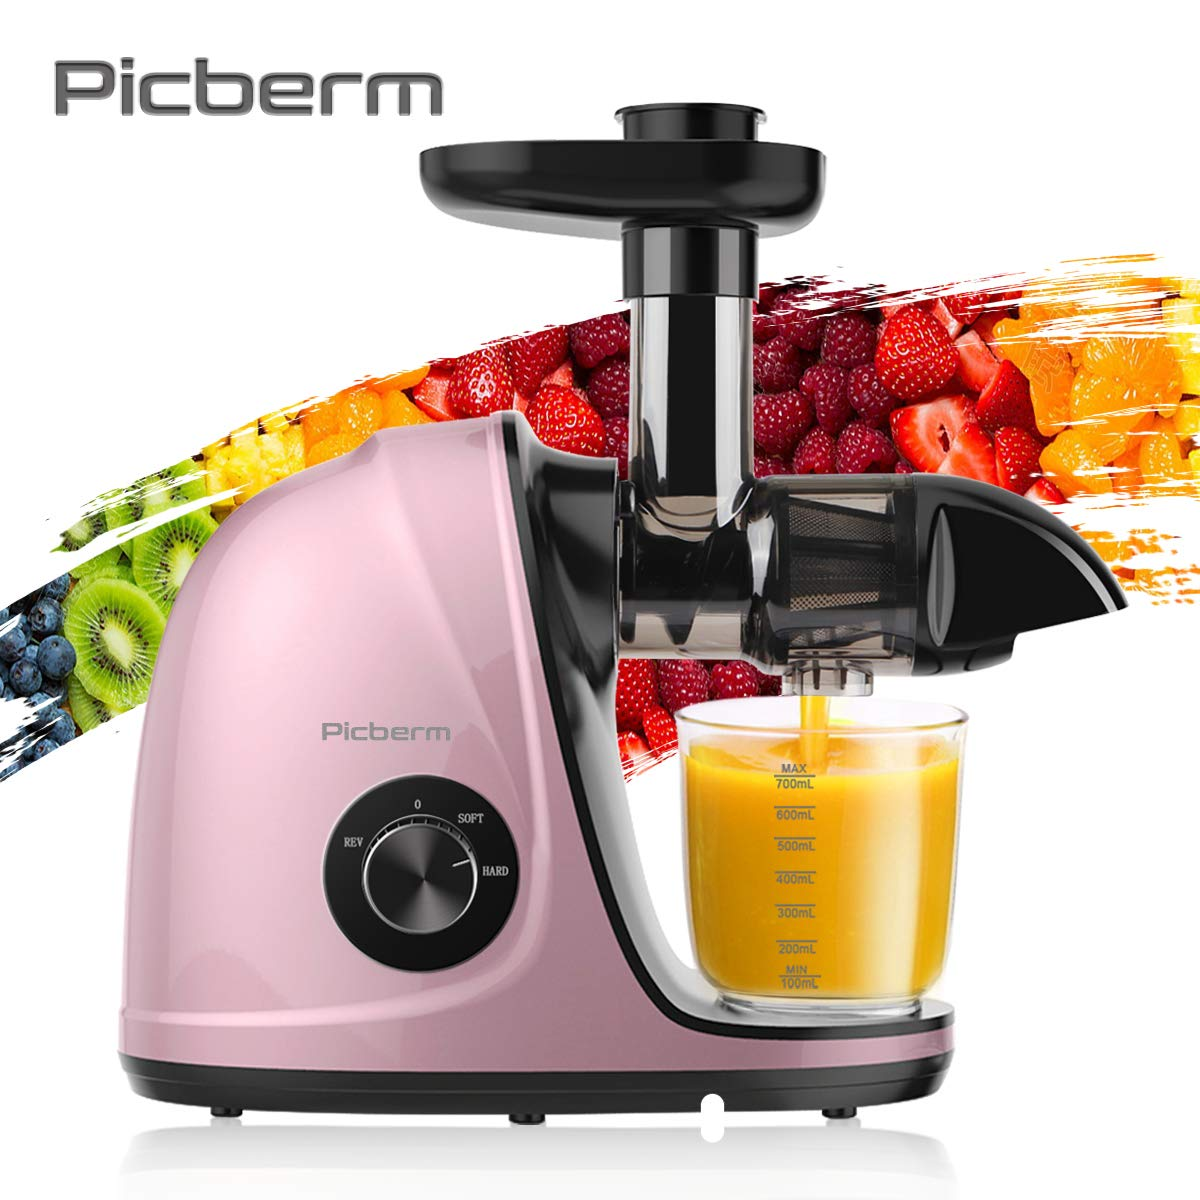 Juicer Machines, Picberm Slow Masticating Juicer Extractor with Quiet Motor Easy to Clean, BPA-Free Cold Press Anti-blocking Juicer with Peeler, Brush & Recipes for Fruits and Vegetables, Rose Gold by picberm